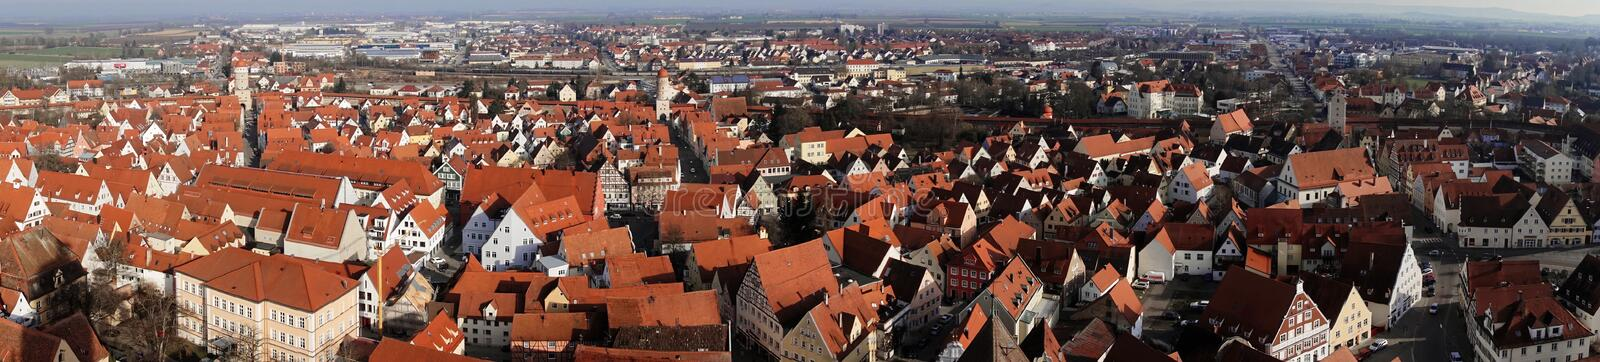 City of Nordlingen royalty free stock photography